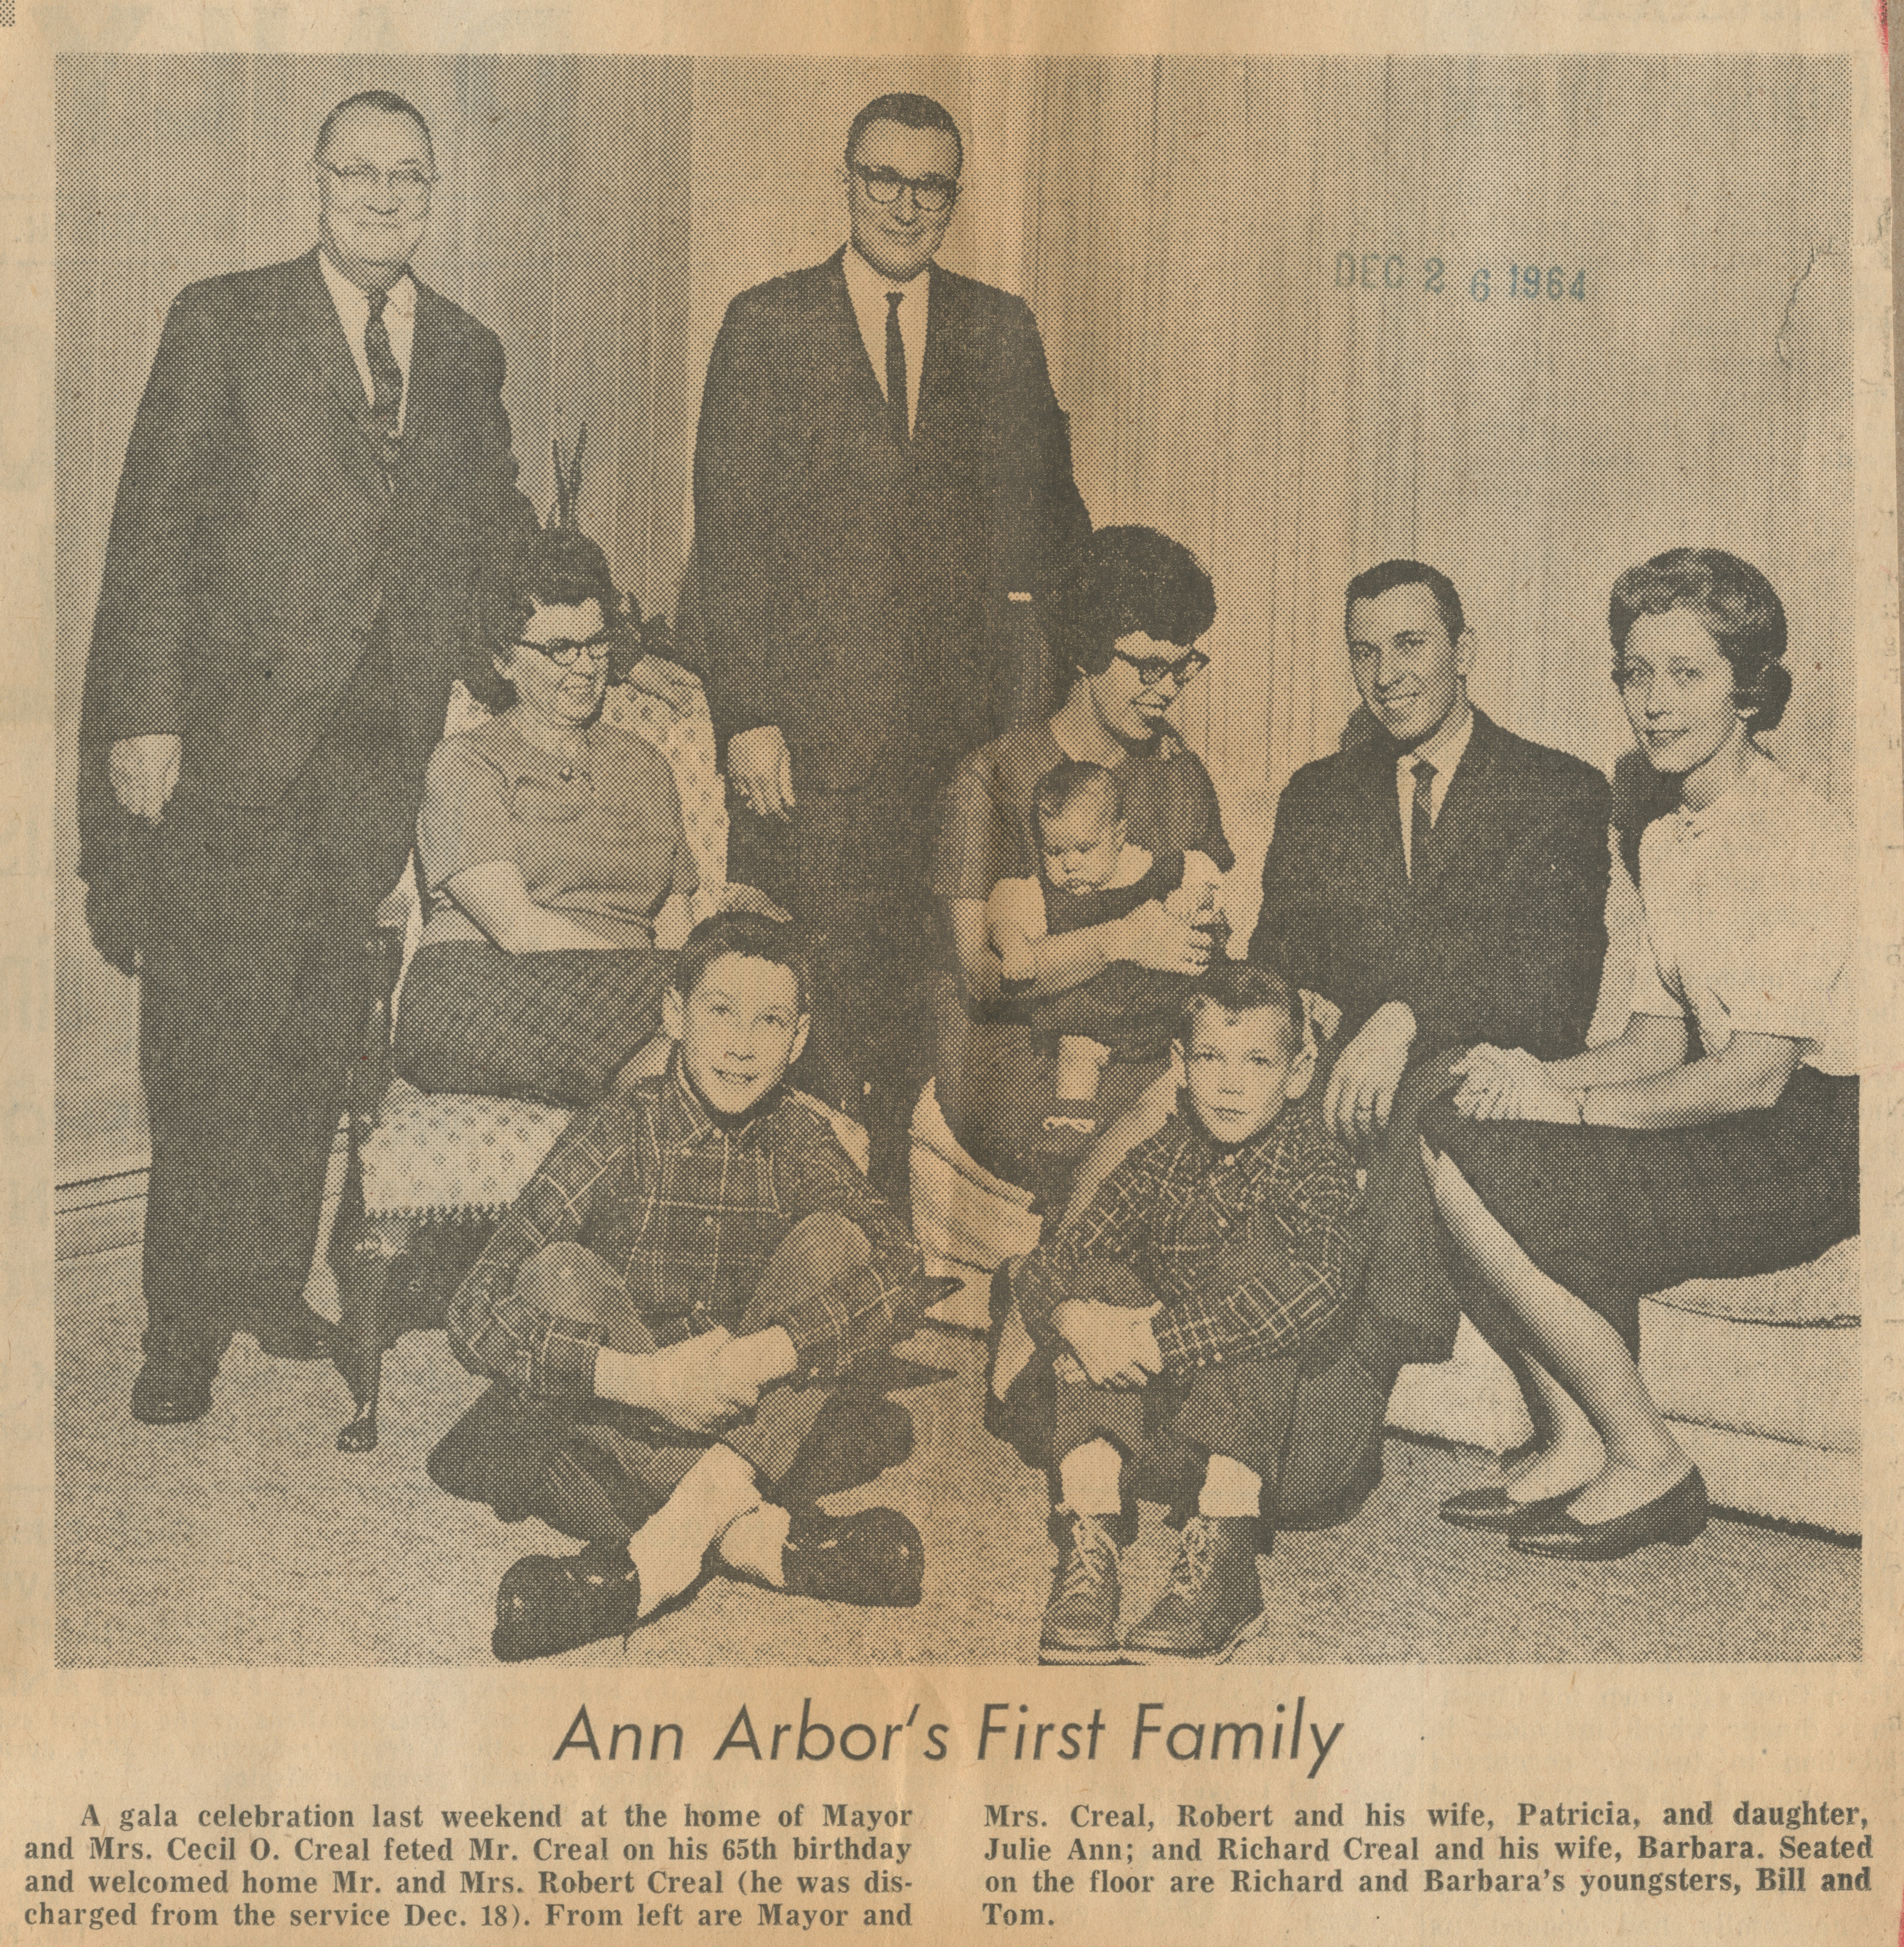 Ann Arbor's First Family image